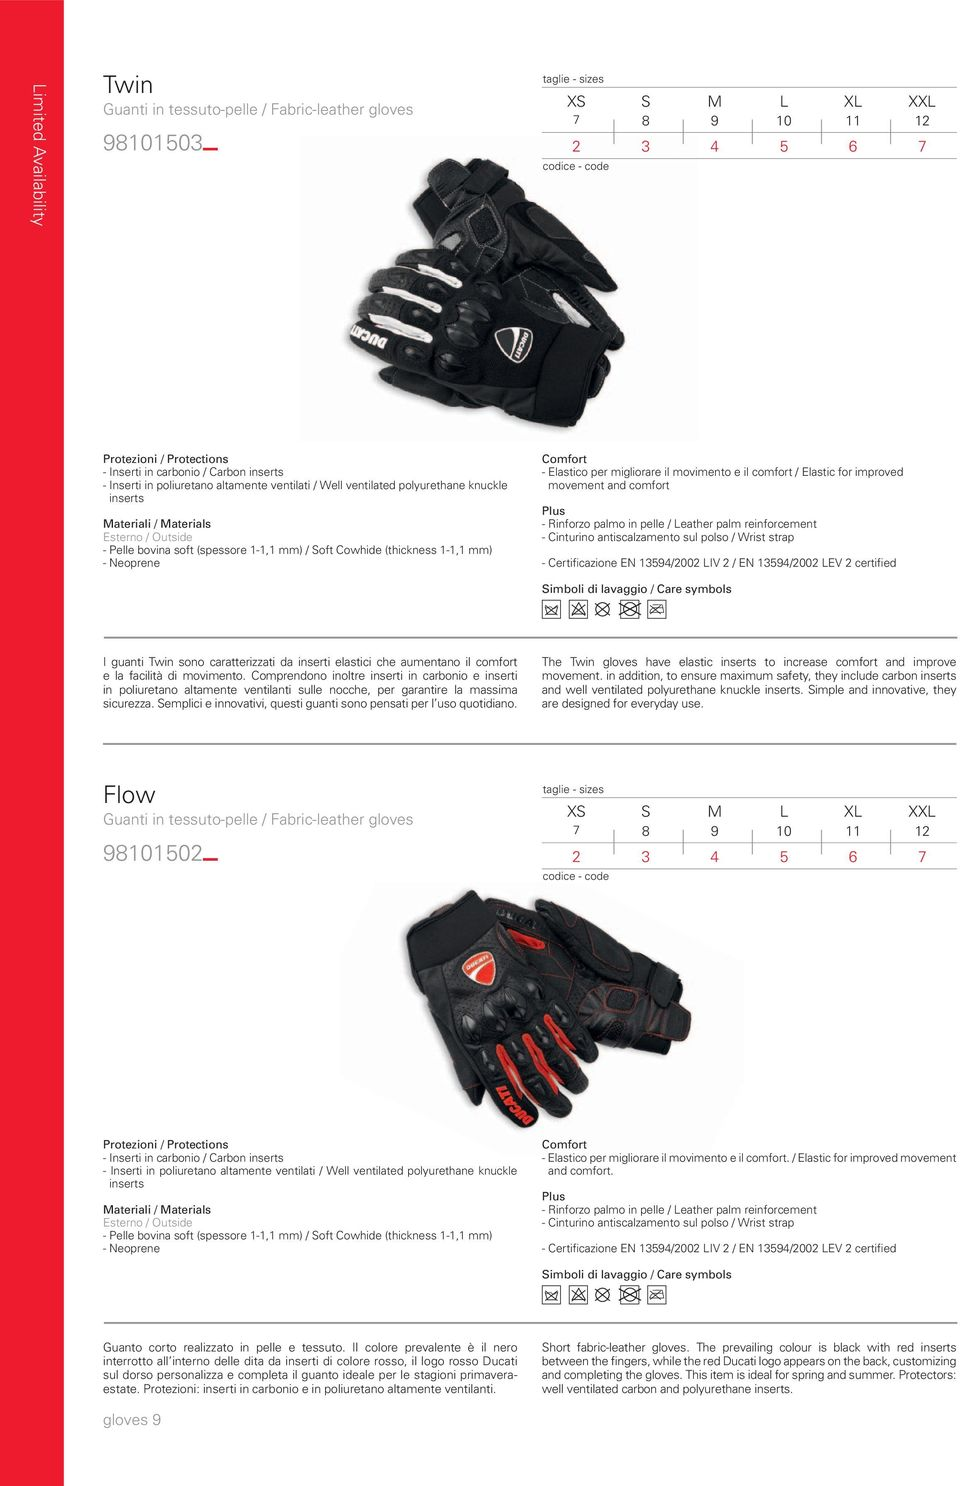 movement and comfort - Rinforzo palmo in pelle / eather palm reinforcement - Cinturino antiscalzamento sul polso / Wrist strap - Certificazione EN 1354/2002 IV 2 / EN 1354/2002 EV 2 certified I